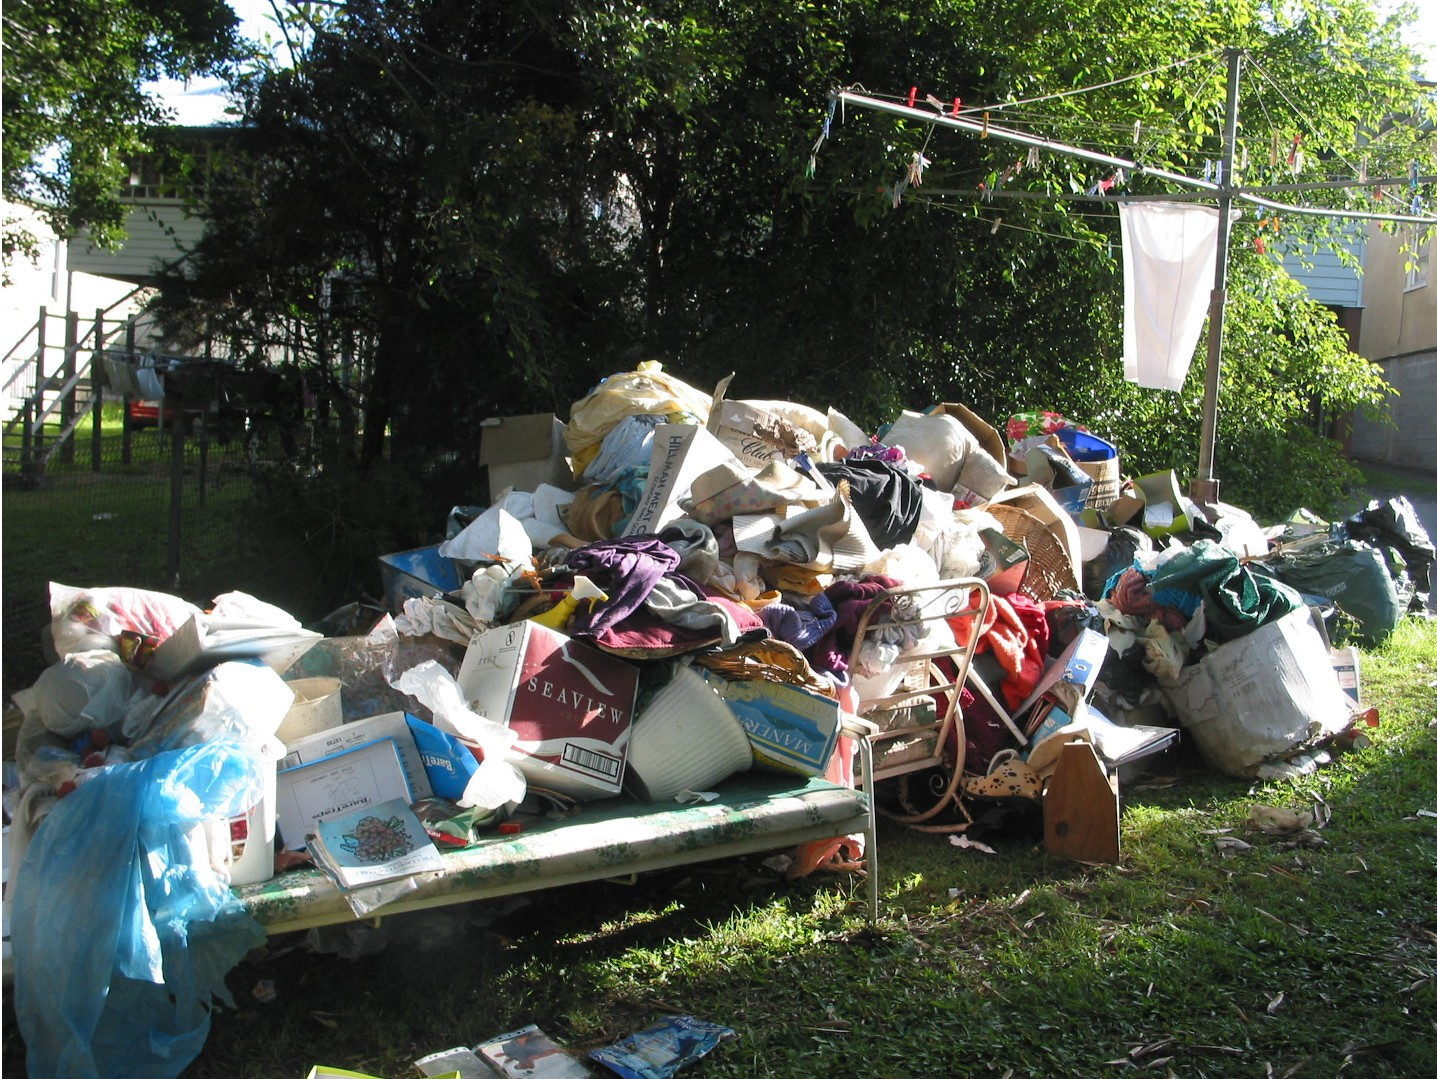 Who is responsible for the Tenants rubbish?